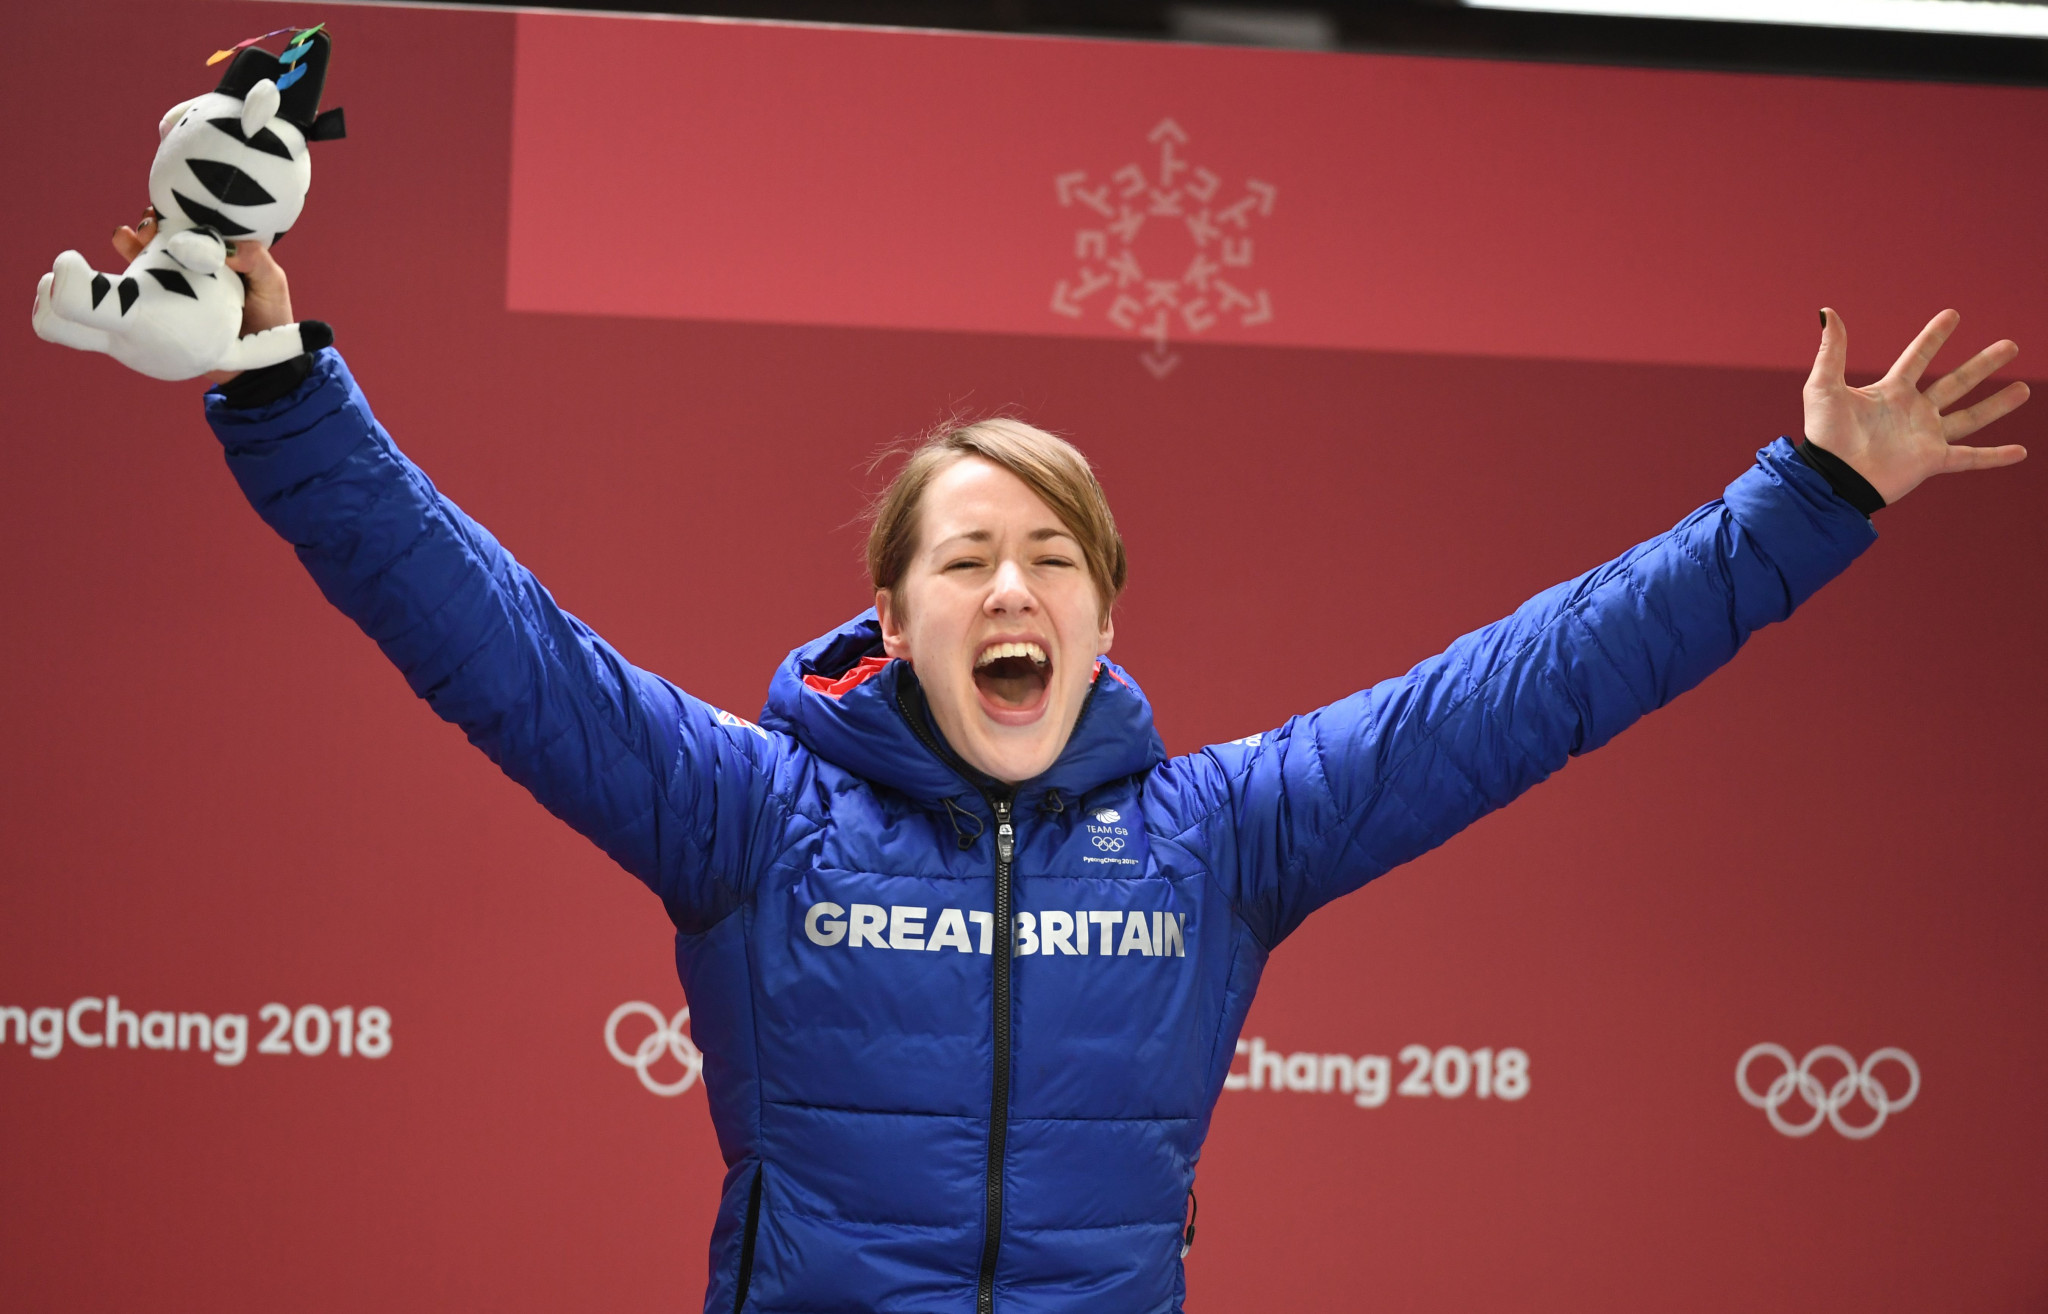 Lizzy Yarnold became Great Britain's most successful Winter Olympian of all time when she defended her skeleton title in Pyeongchang ©Getty Images